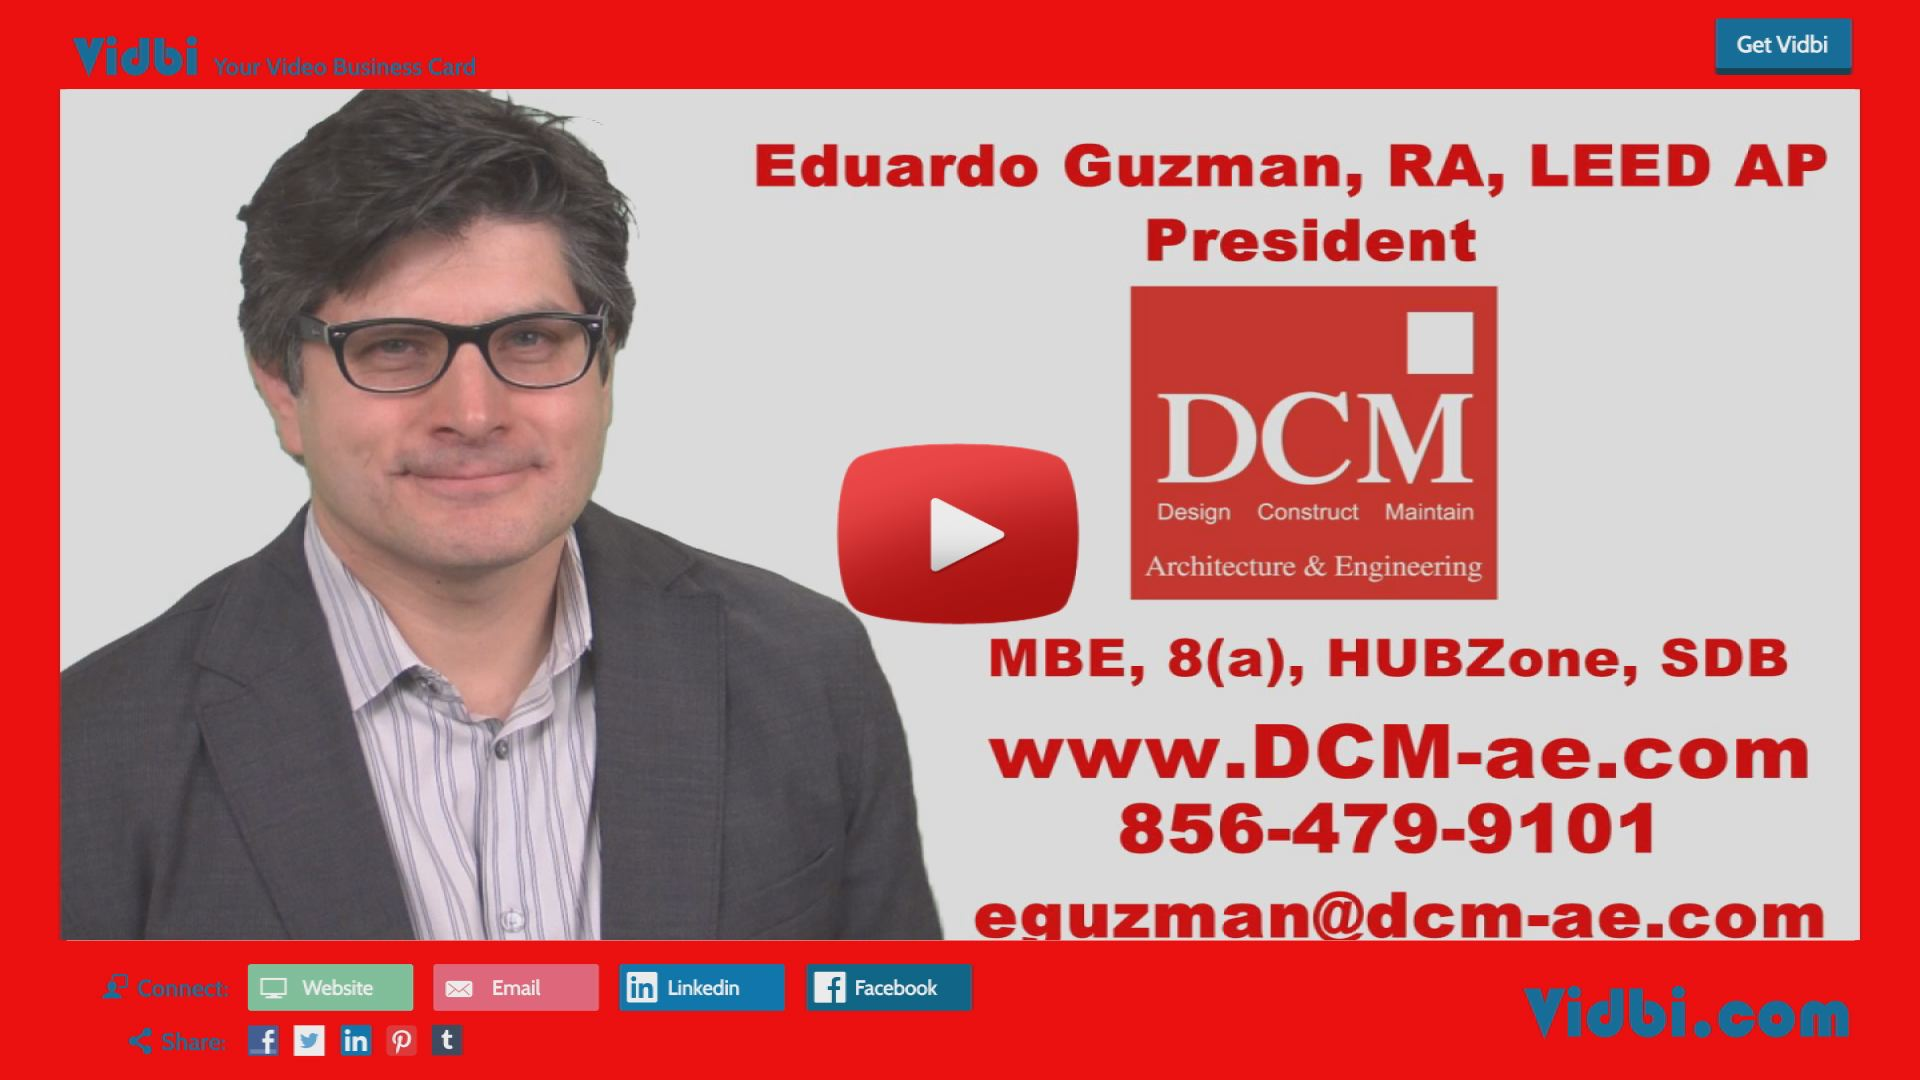 Eduardo Guzman - DCM Architecture and Engineering Vidbi